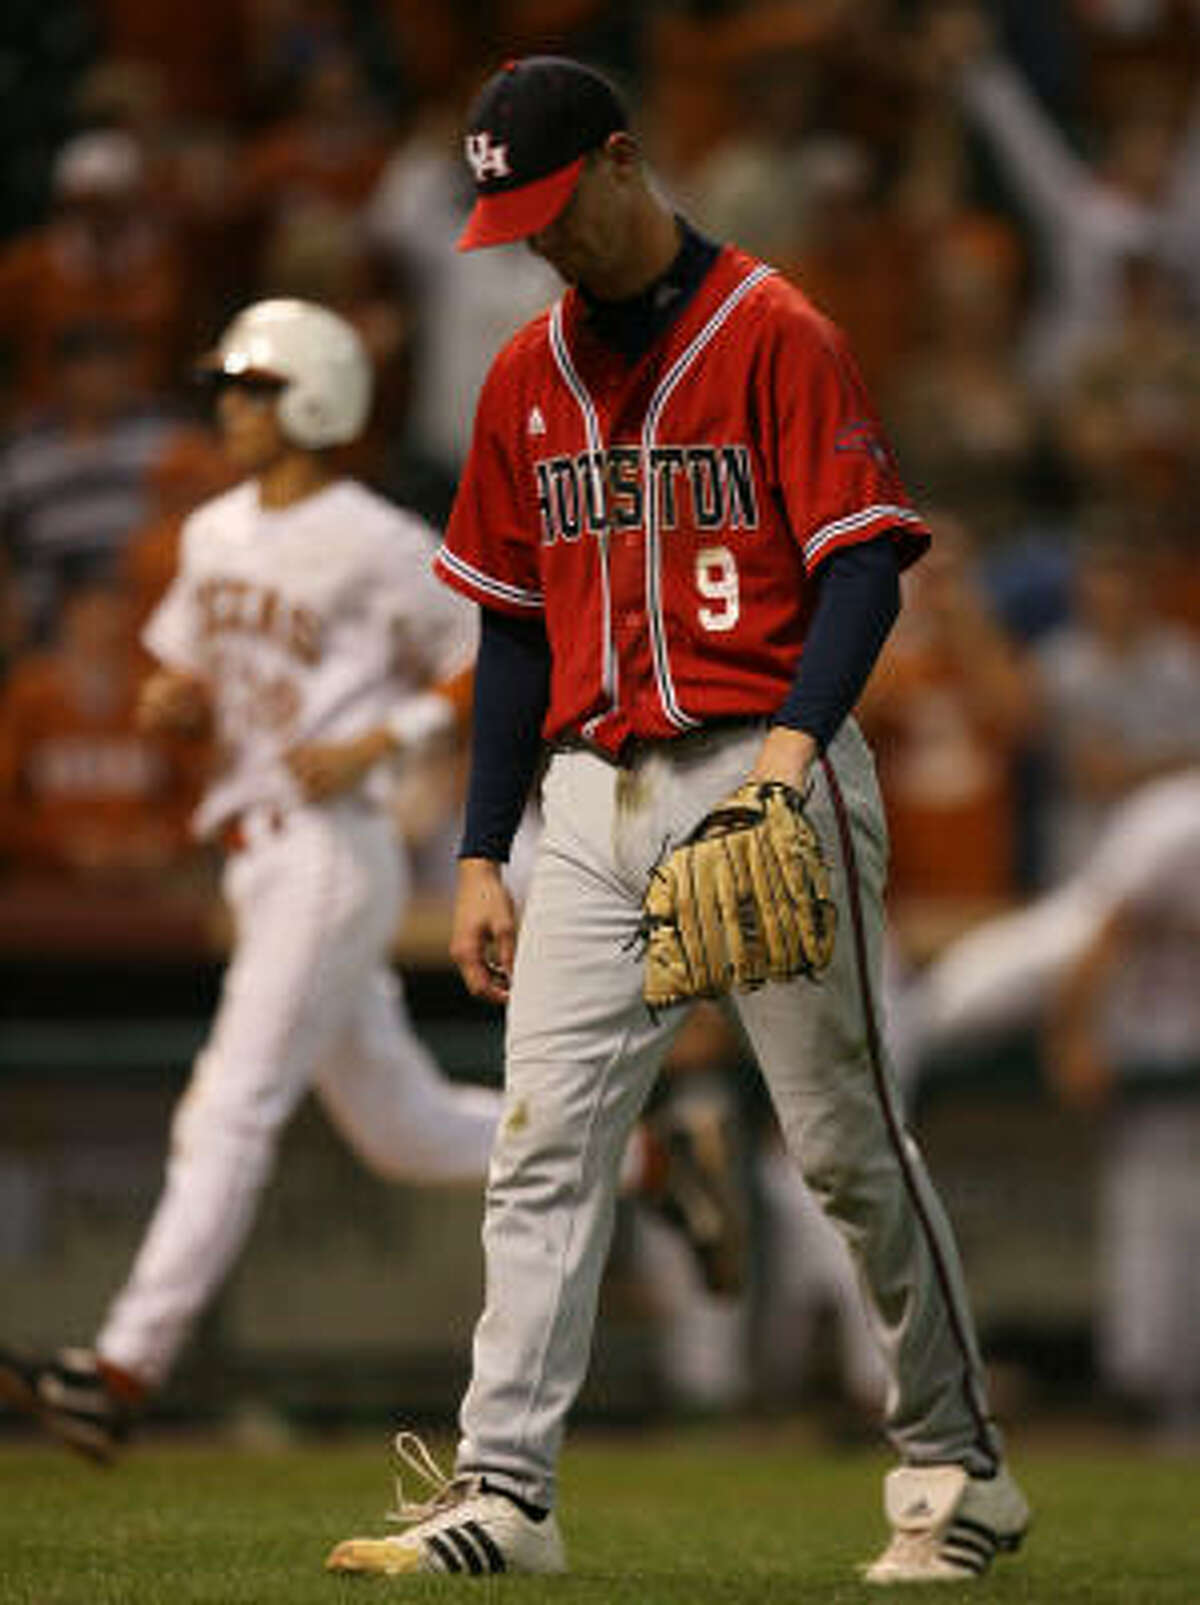 UH pitcher Chase Dempsay walks off the field after giving up a a game-winning single, allowing Texas' David Hernandez to score in the bottom of the 10th inning.